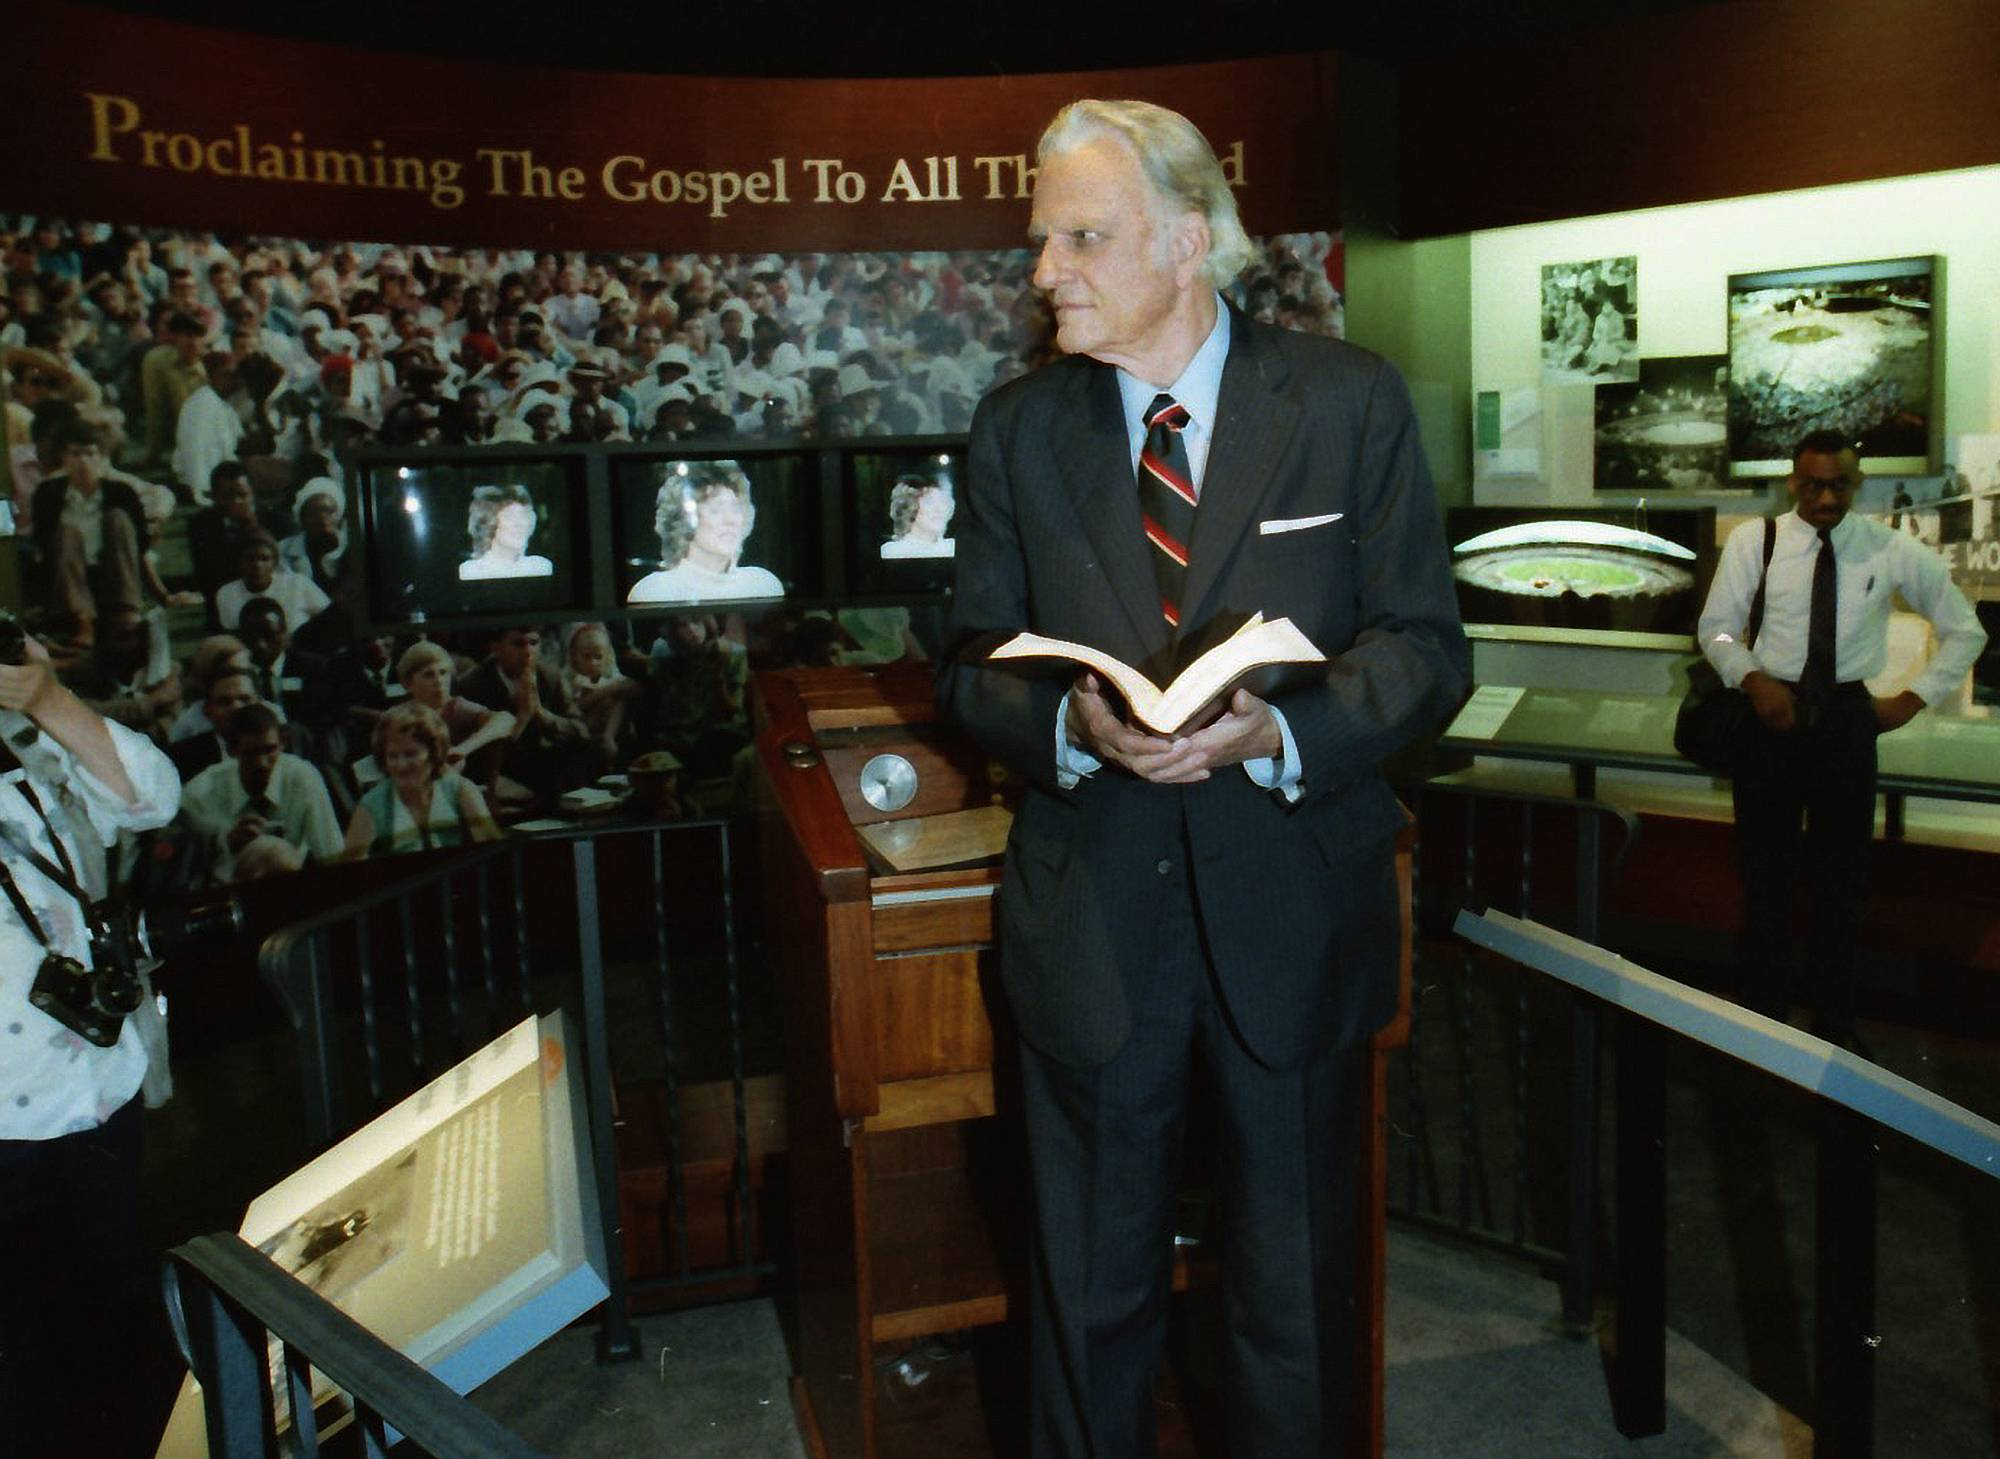 The Rev. Billy Graham last visited Wheaton College on May 11, 1994, where he stood at his original pulpit that was on display at the school's Billy Graham Museum.